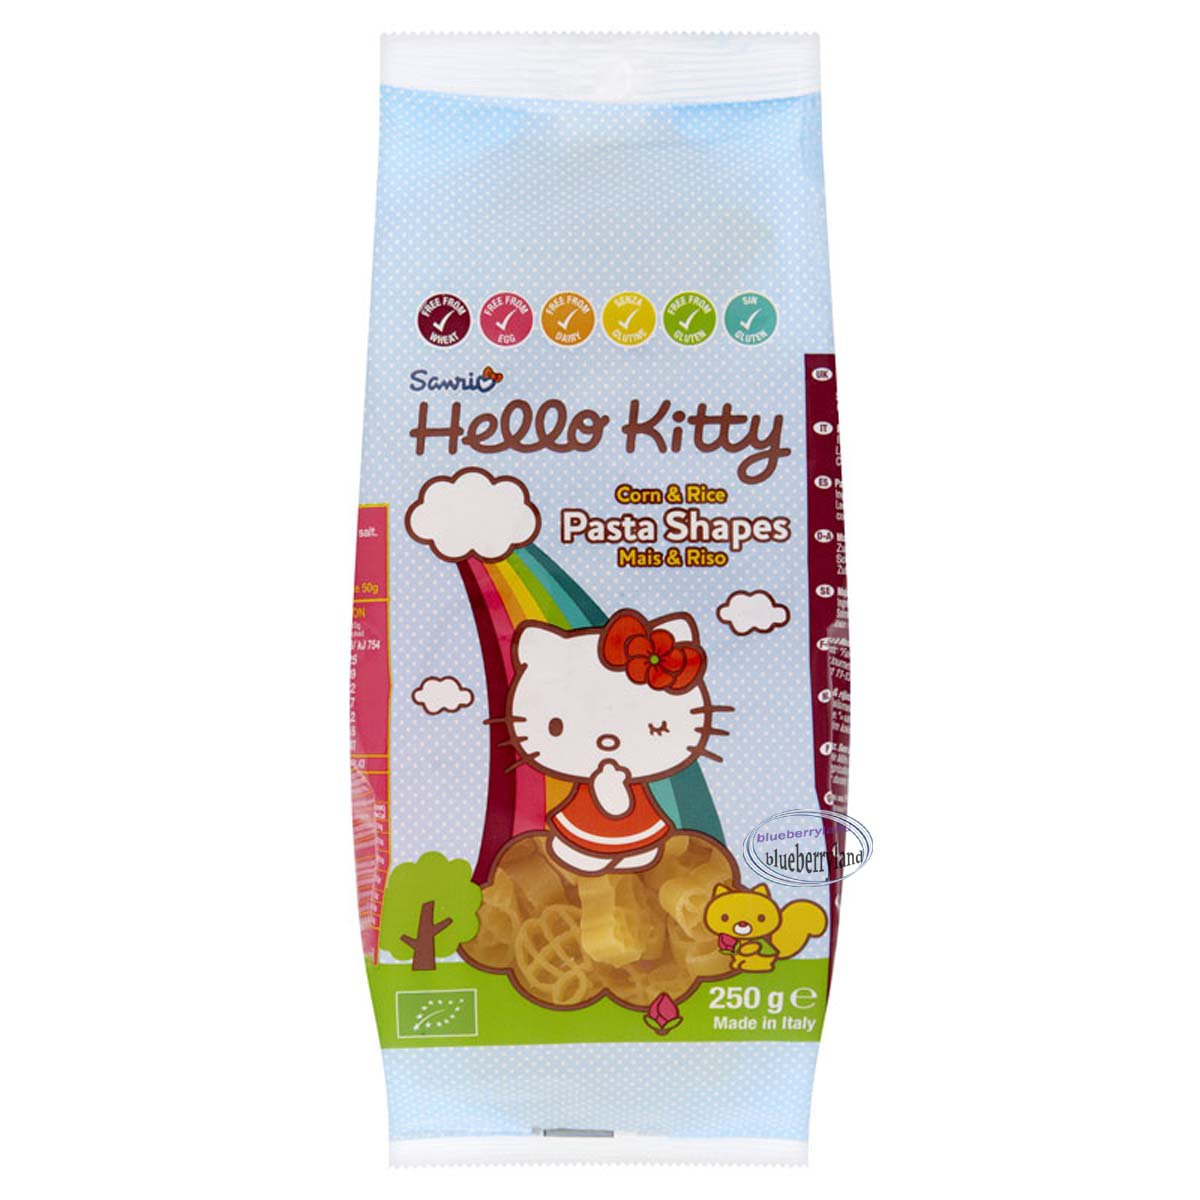 Sanrio Hello Kitty Corn and Rice Pasta Shapes 250g food home kitchen